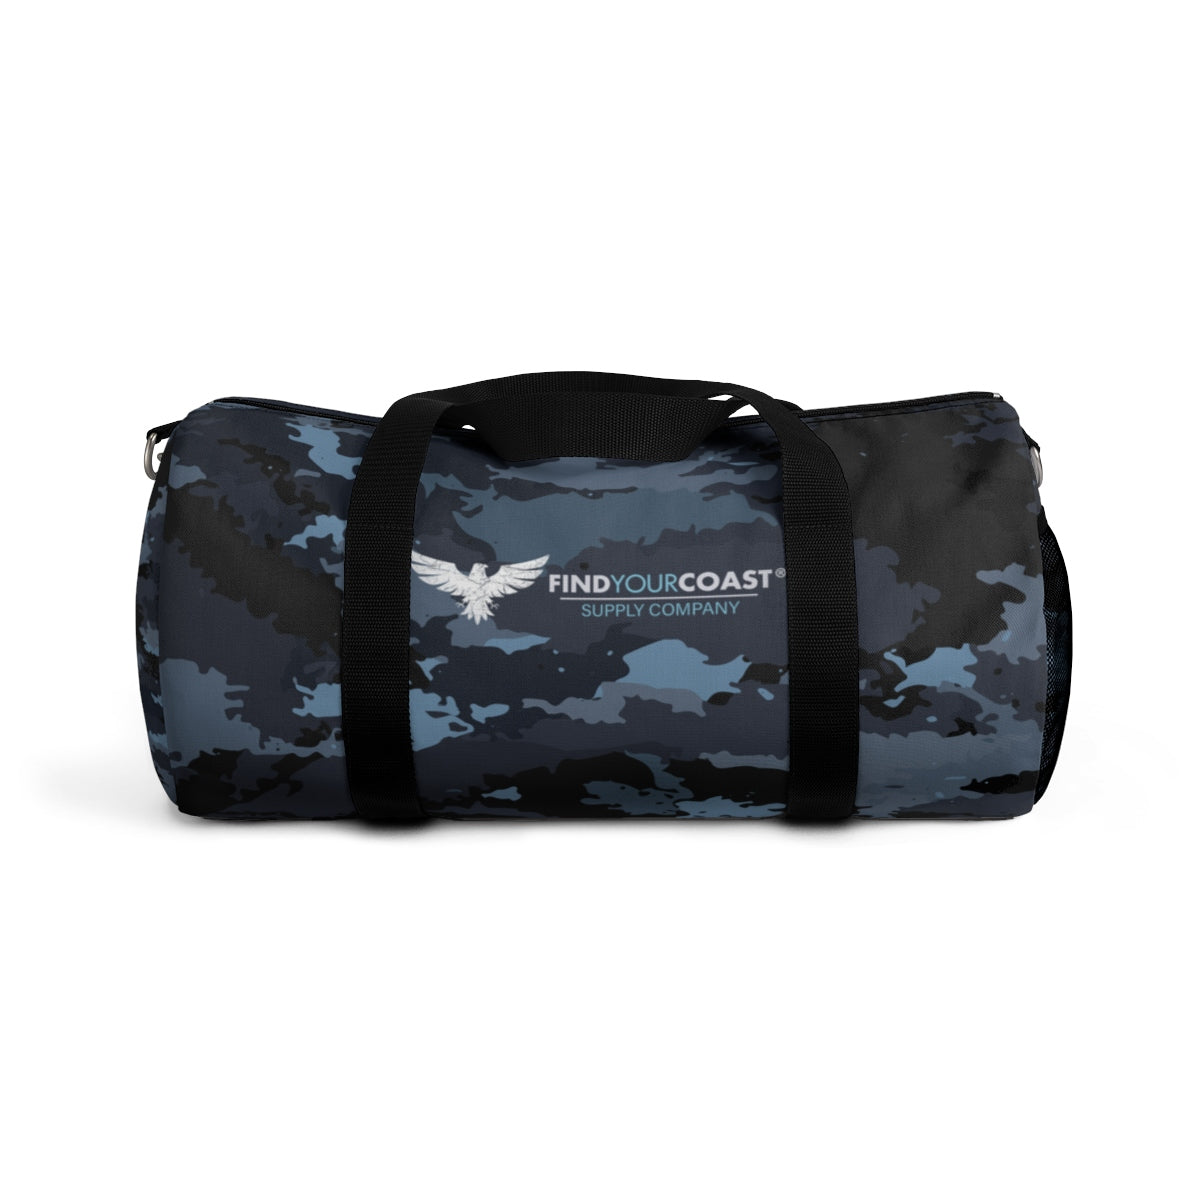 Find Your Coast Camo Duffel Bag - Find Your Coast Supply Co.